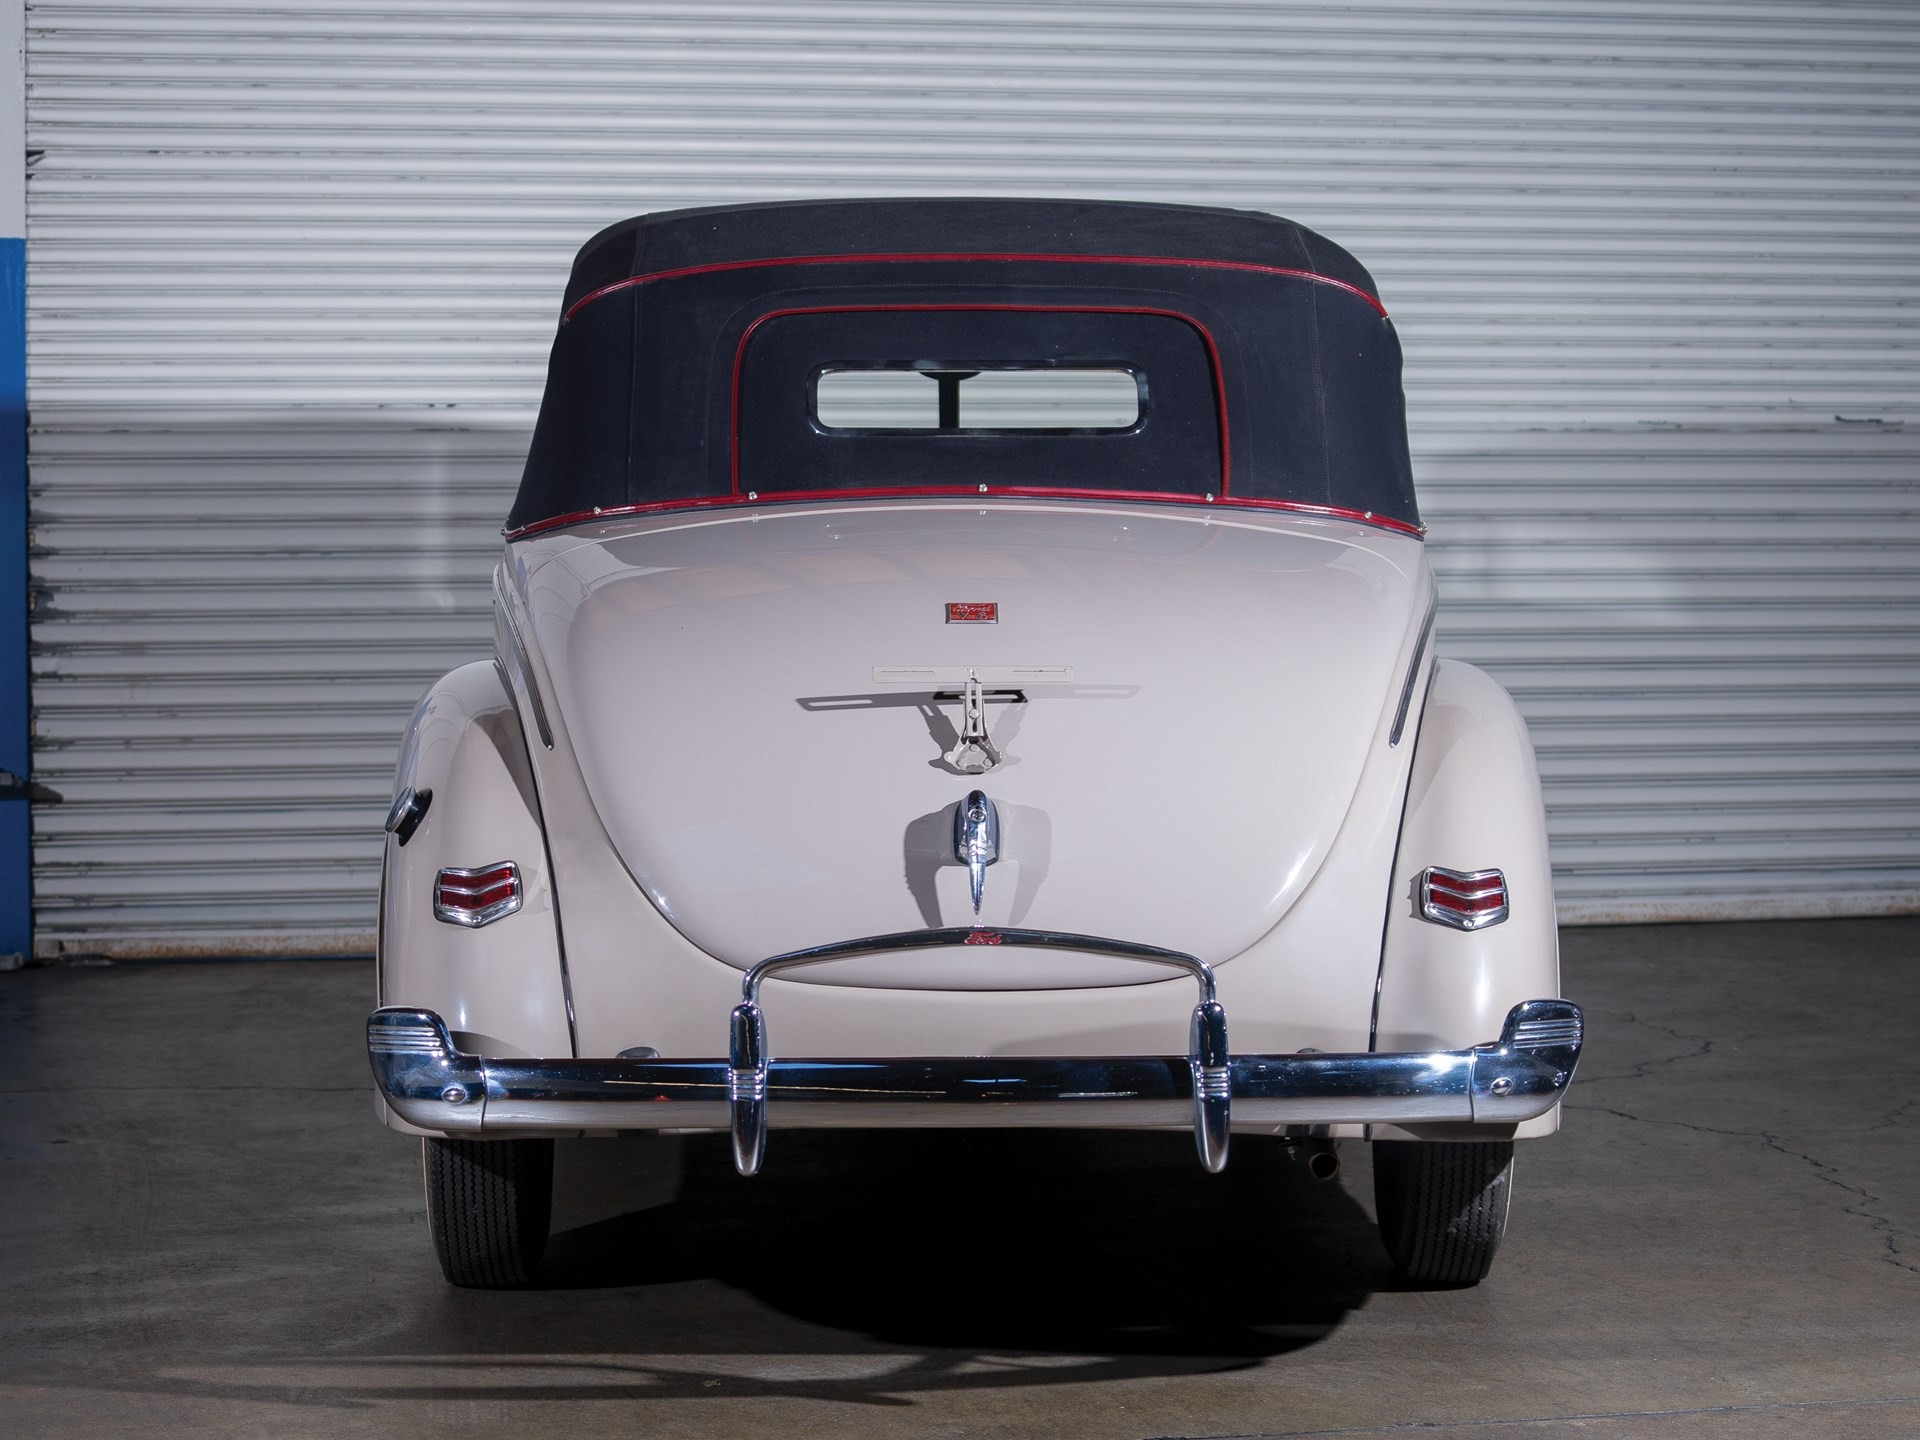 1955 Mercedes-Benz 300 S Coupe